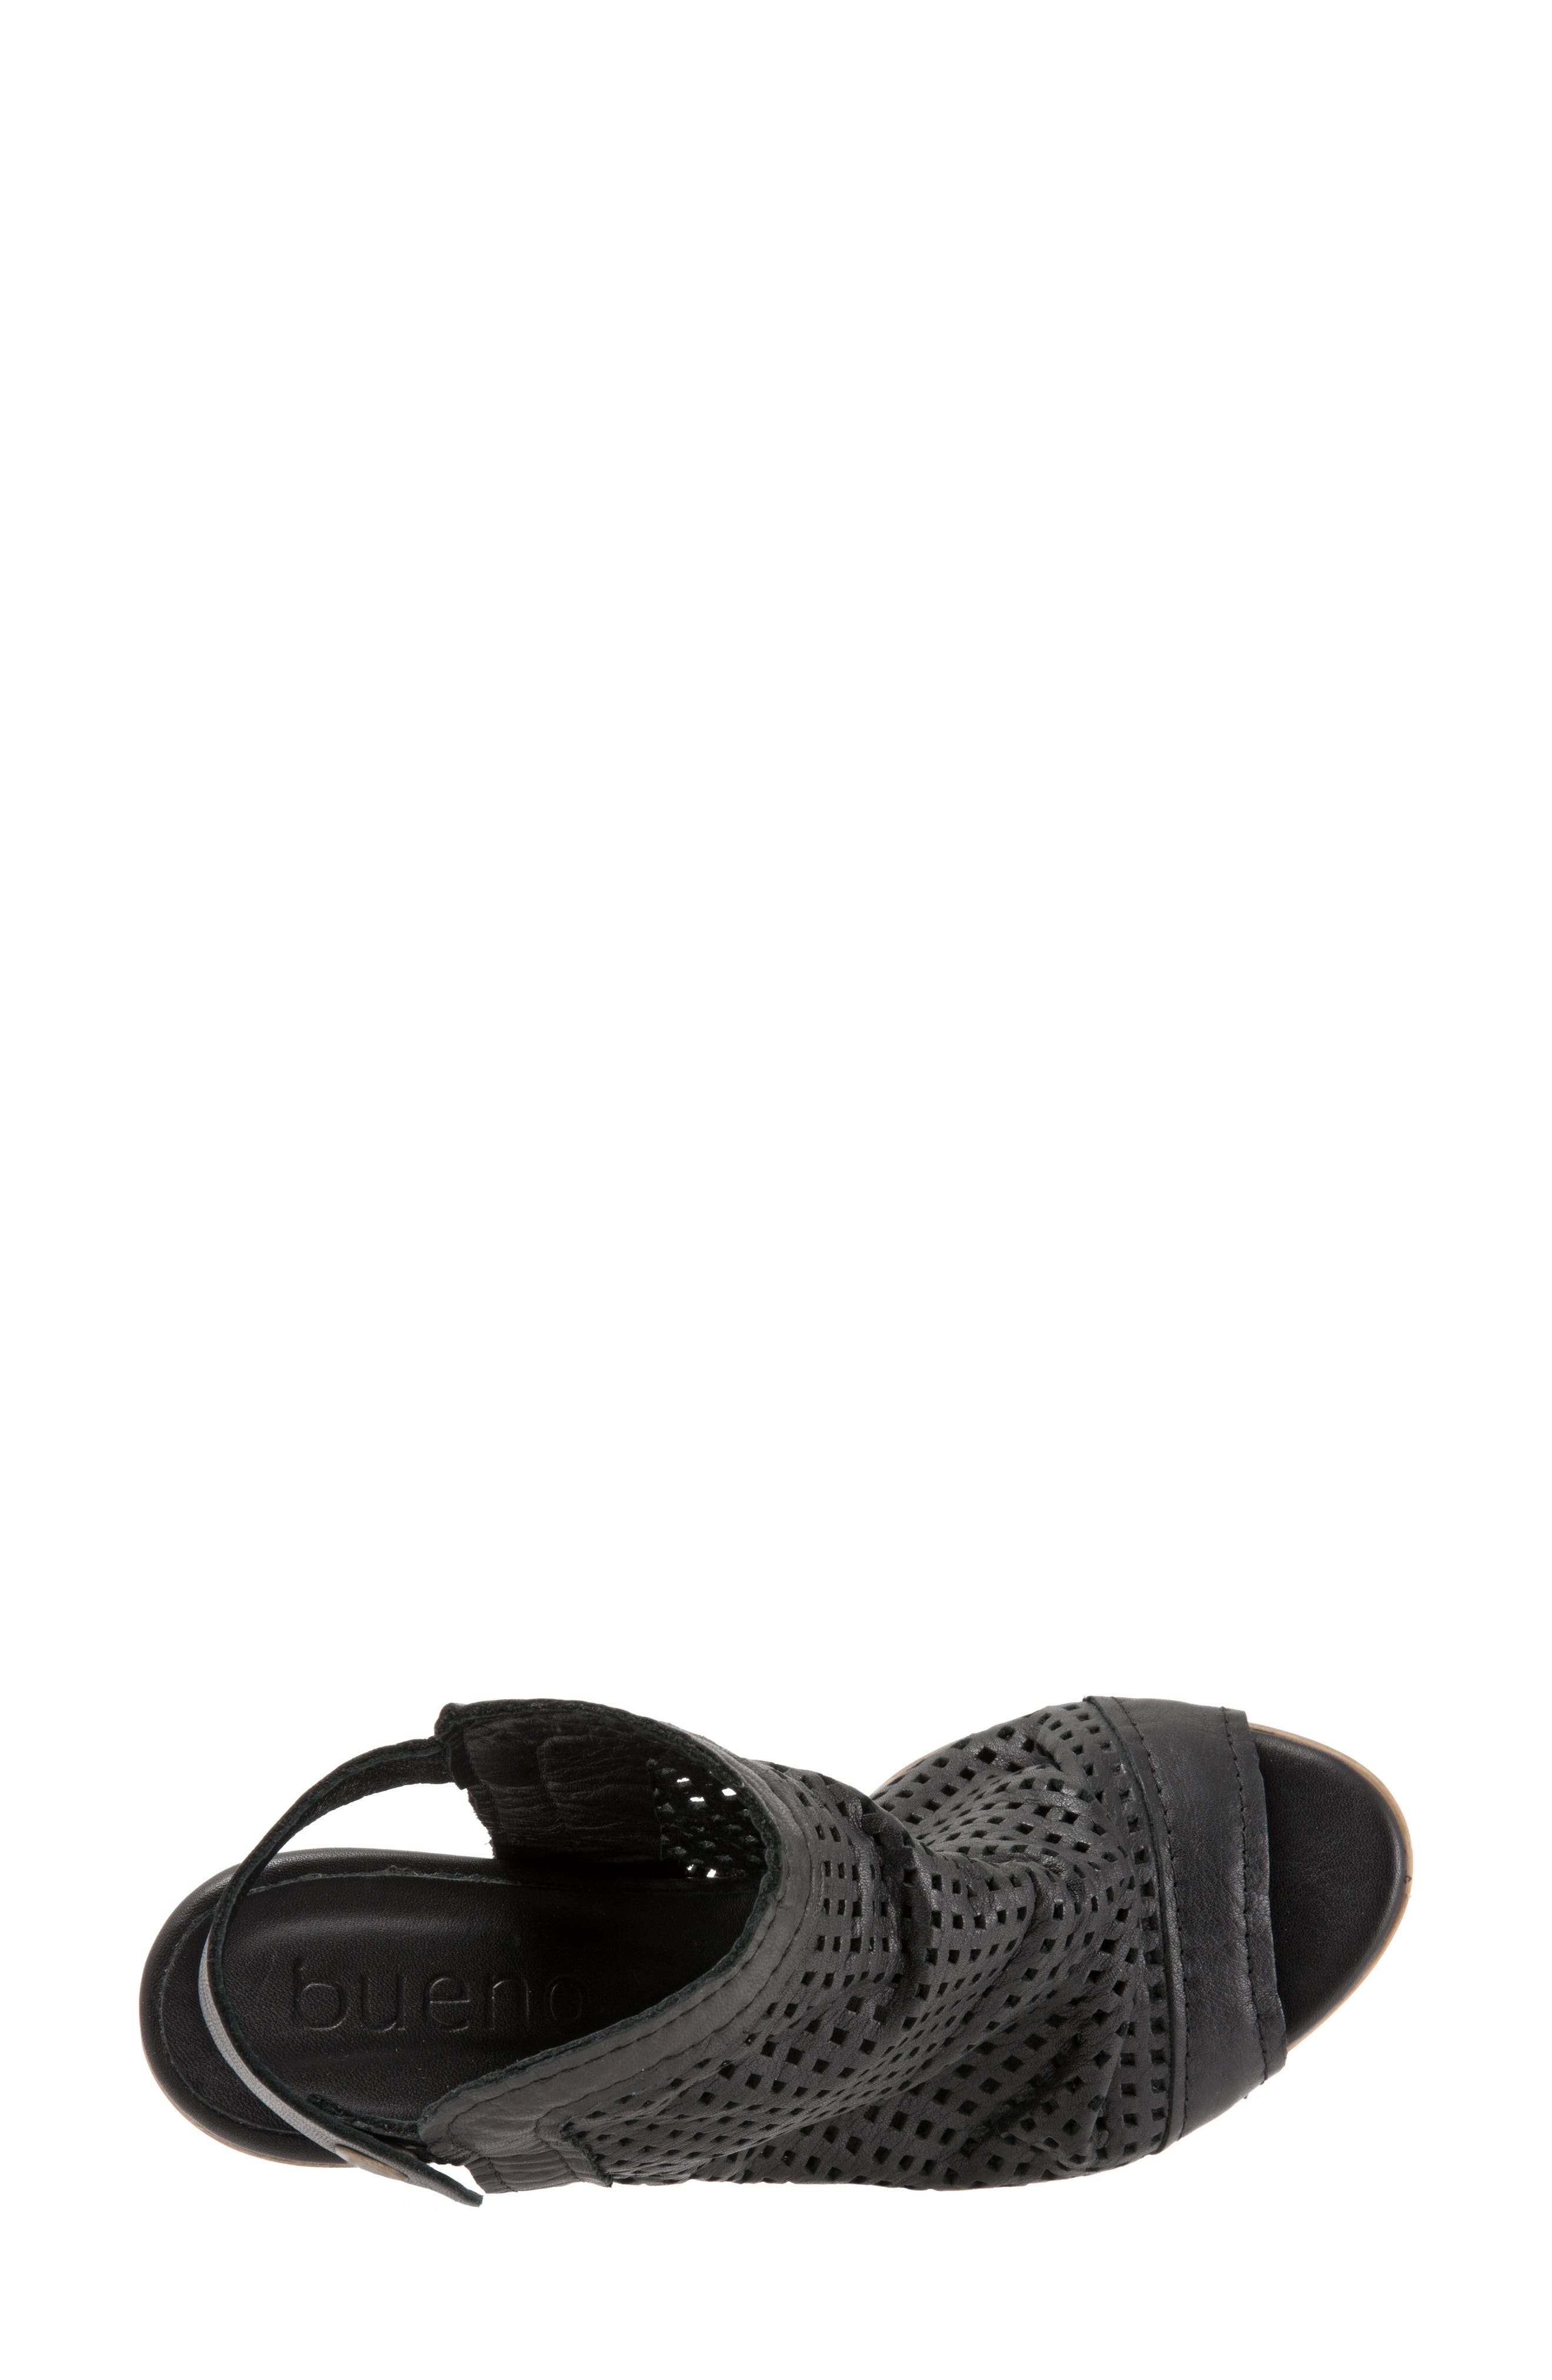 Udo Sandal,                             Alternate thumbnail 5, color,                             Black Leather